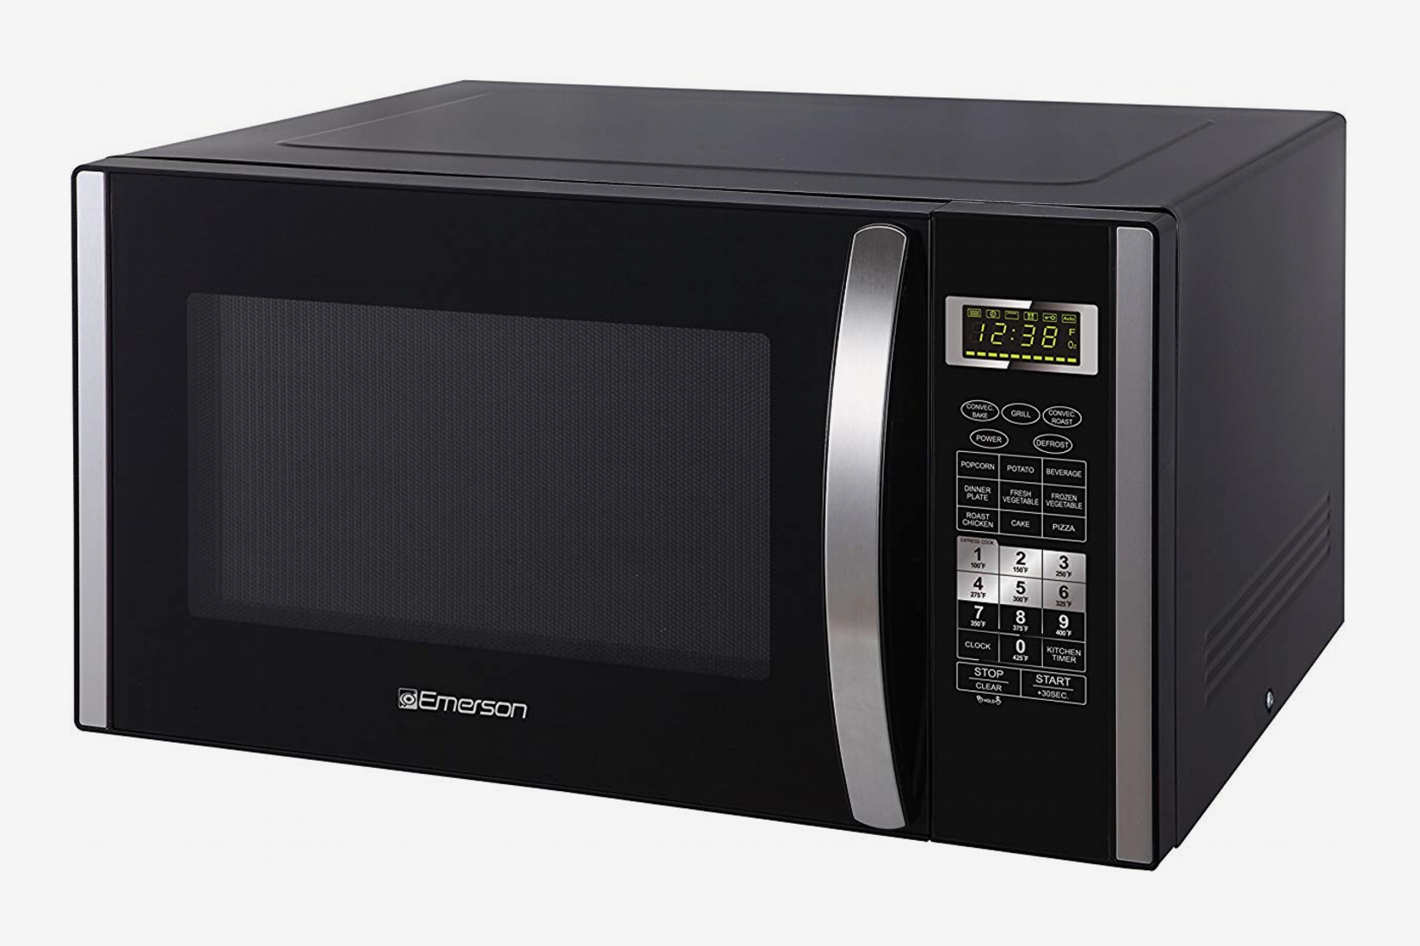 Ft 1000w Convection Microwave Oven With Grill Touch Control